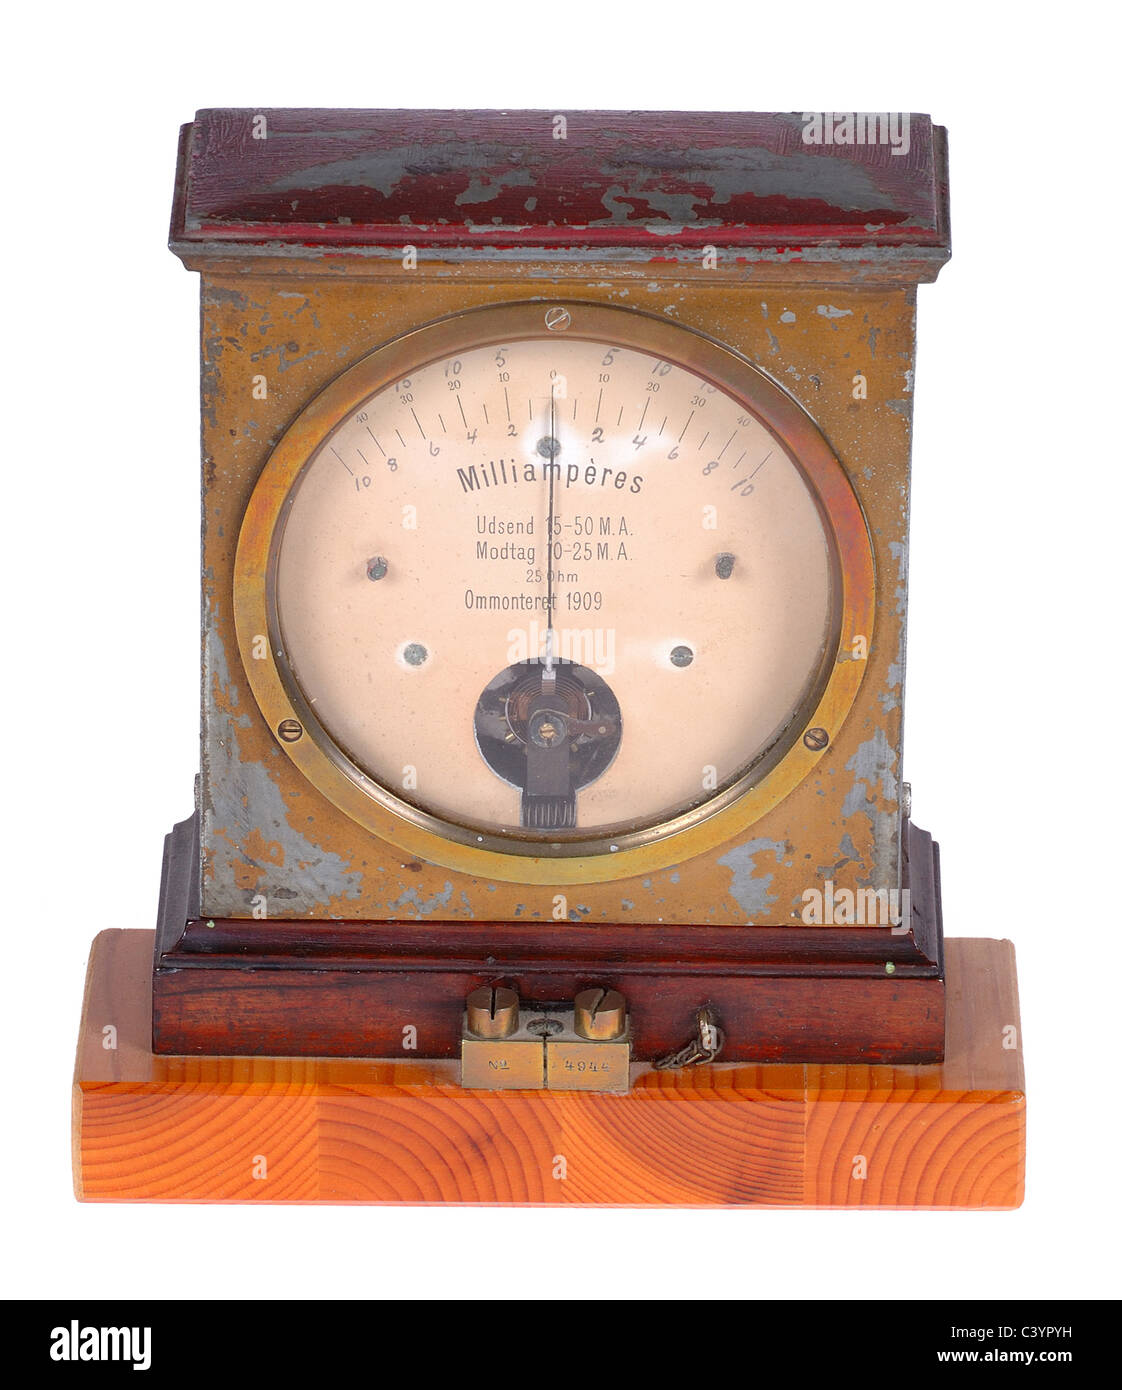 Ampere Meter Stock Photos & Ampere Meter Stock Images - Alamy